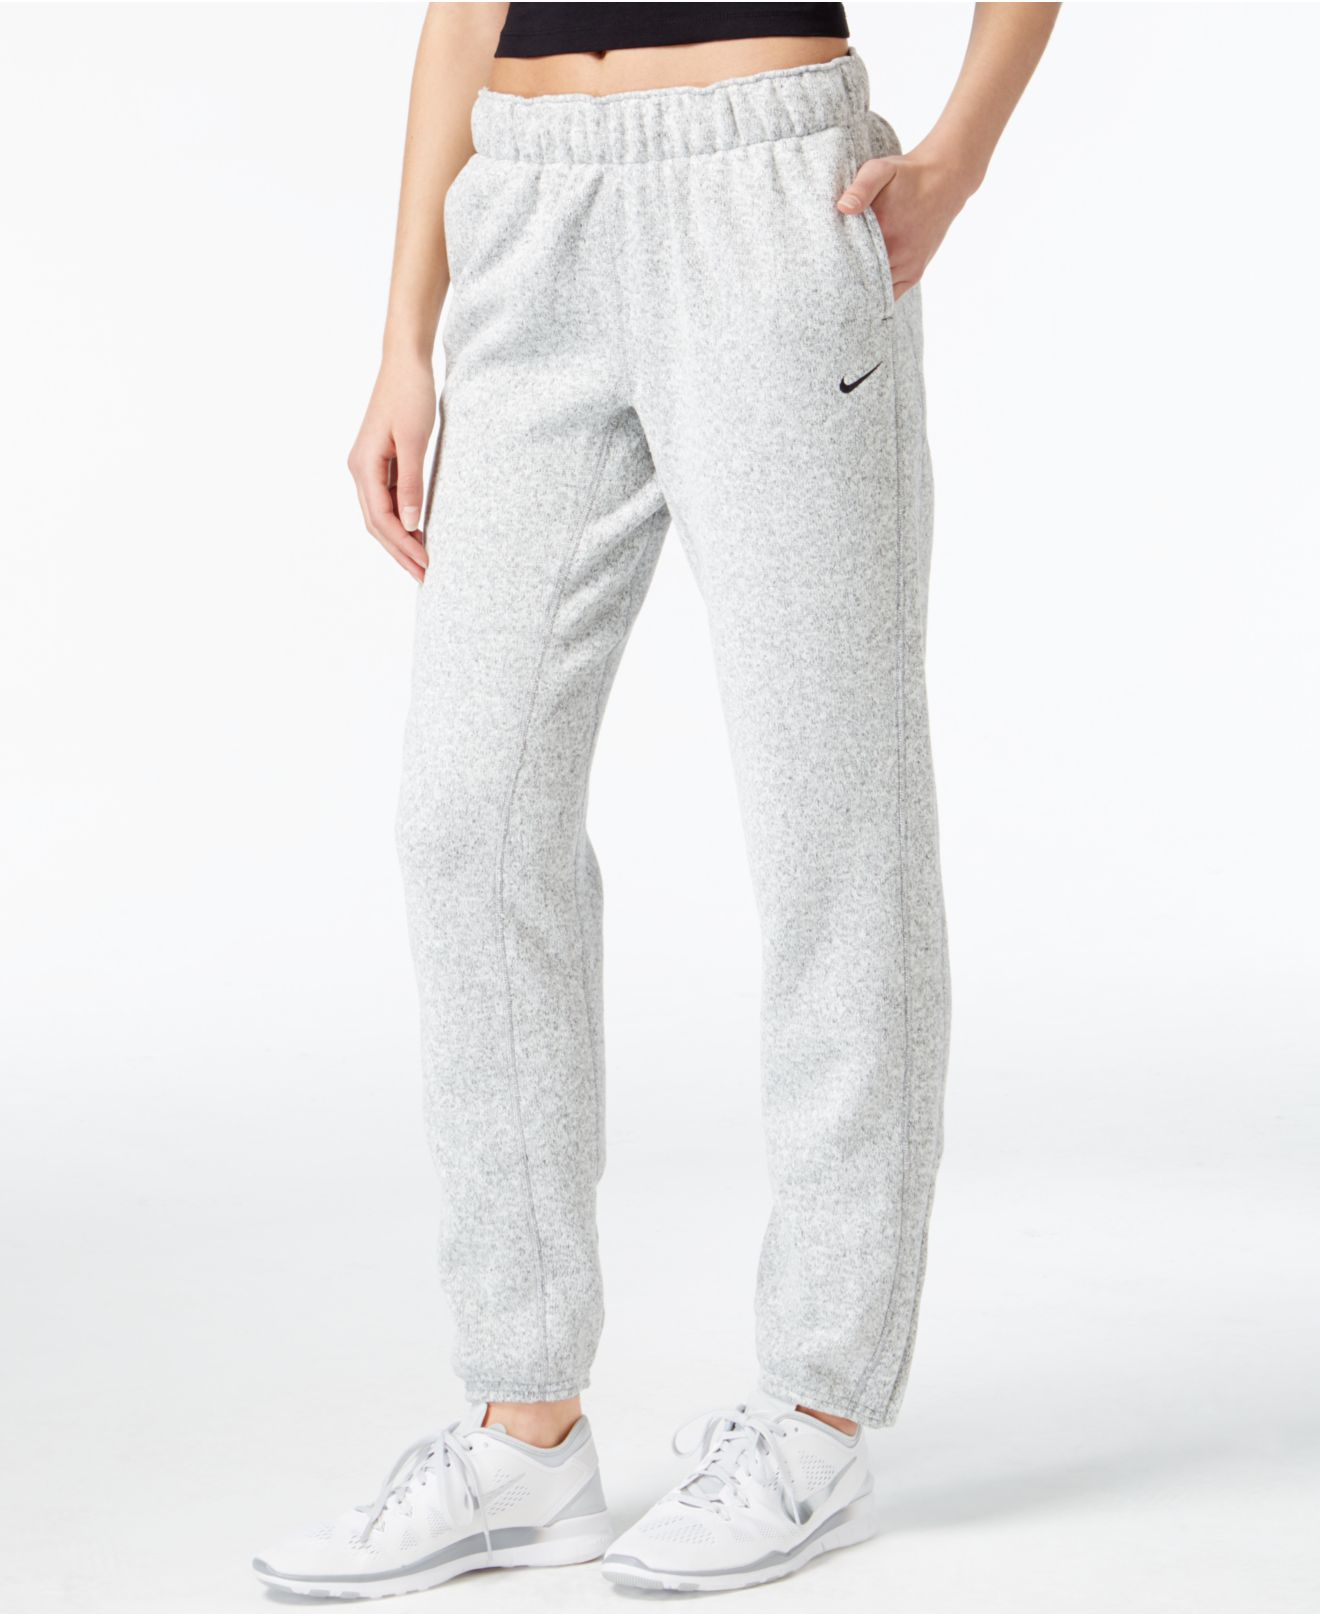 Lyst - Nike Hypernatural Therma-fit Sweat Pants in Gray 69d238e15